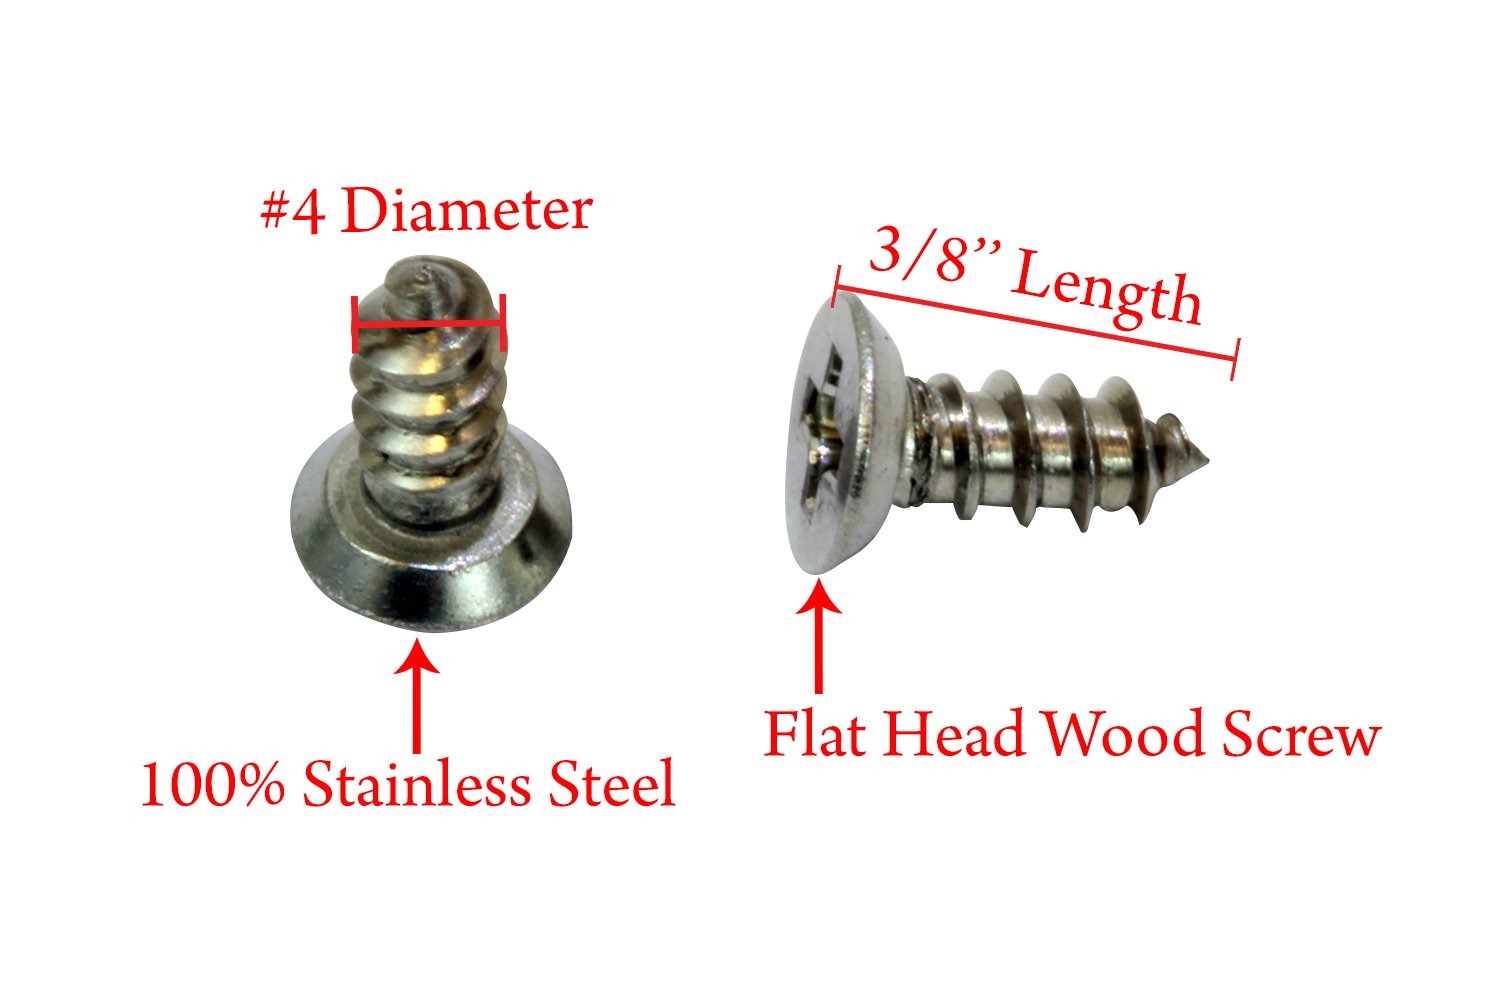 Stainless Steel Screw by Bolt Dropper 25 pc 18-8 #12 X 2 Stainless Flat Head Phillips Wood Screw, 304